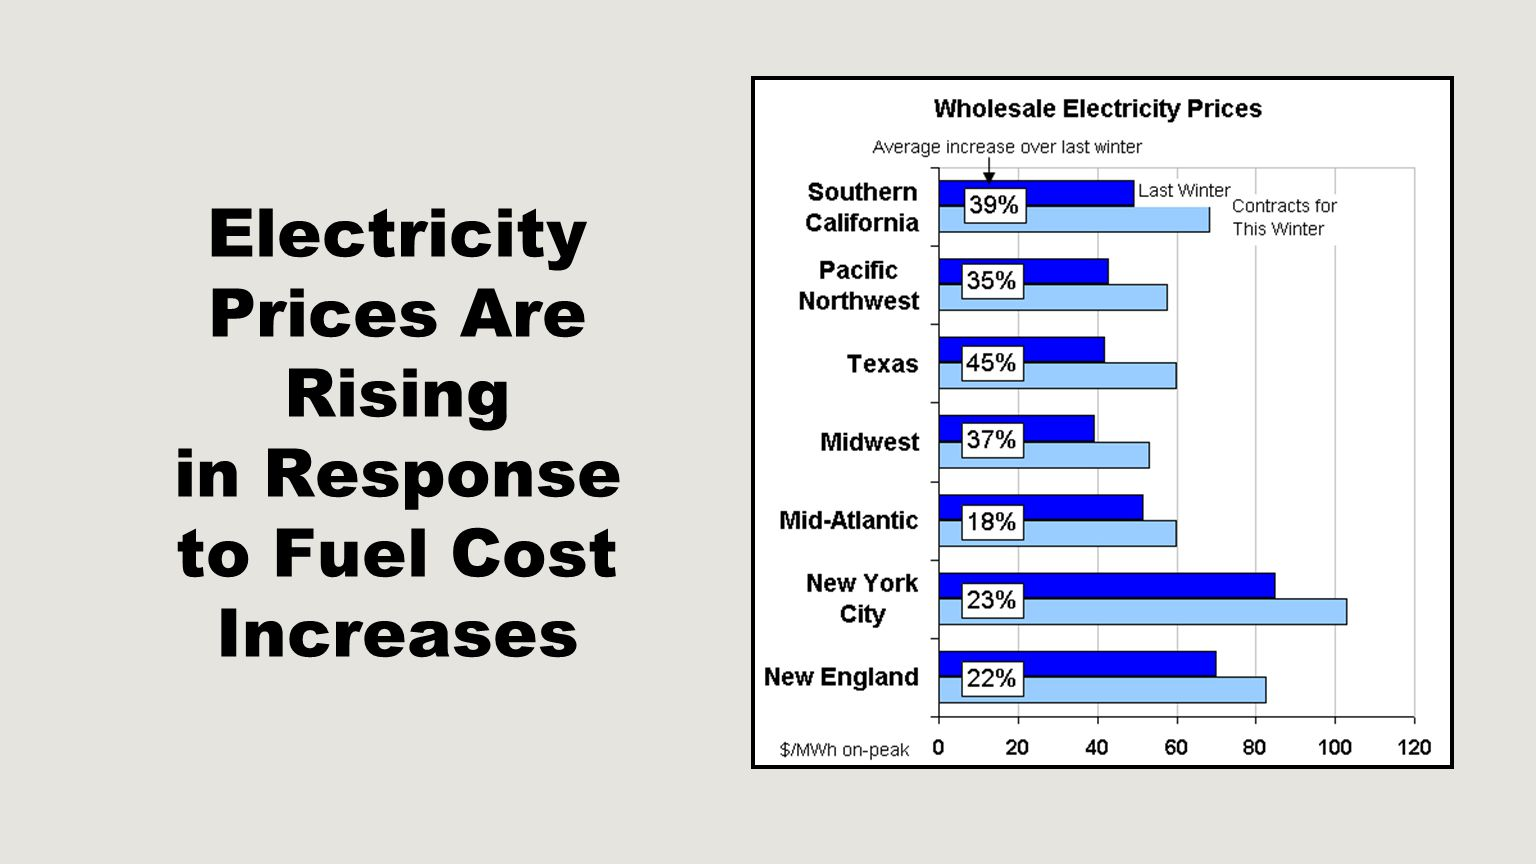 Electricity Prices Are Rising in Response to Fuel Cost Increases